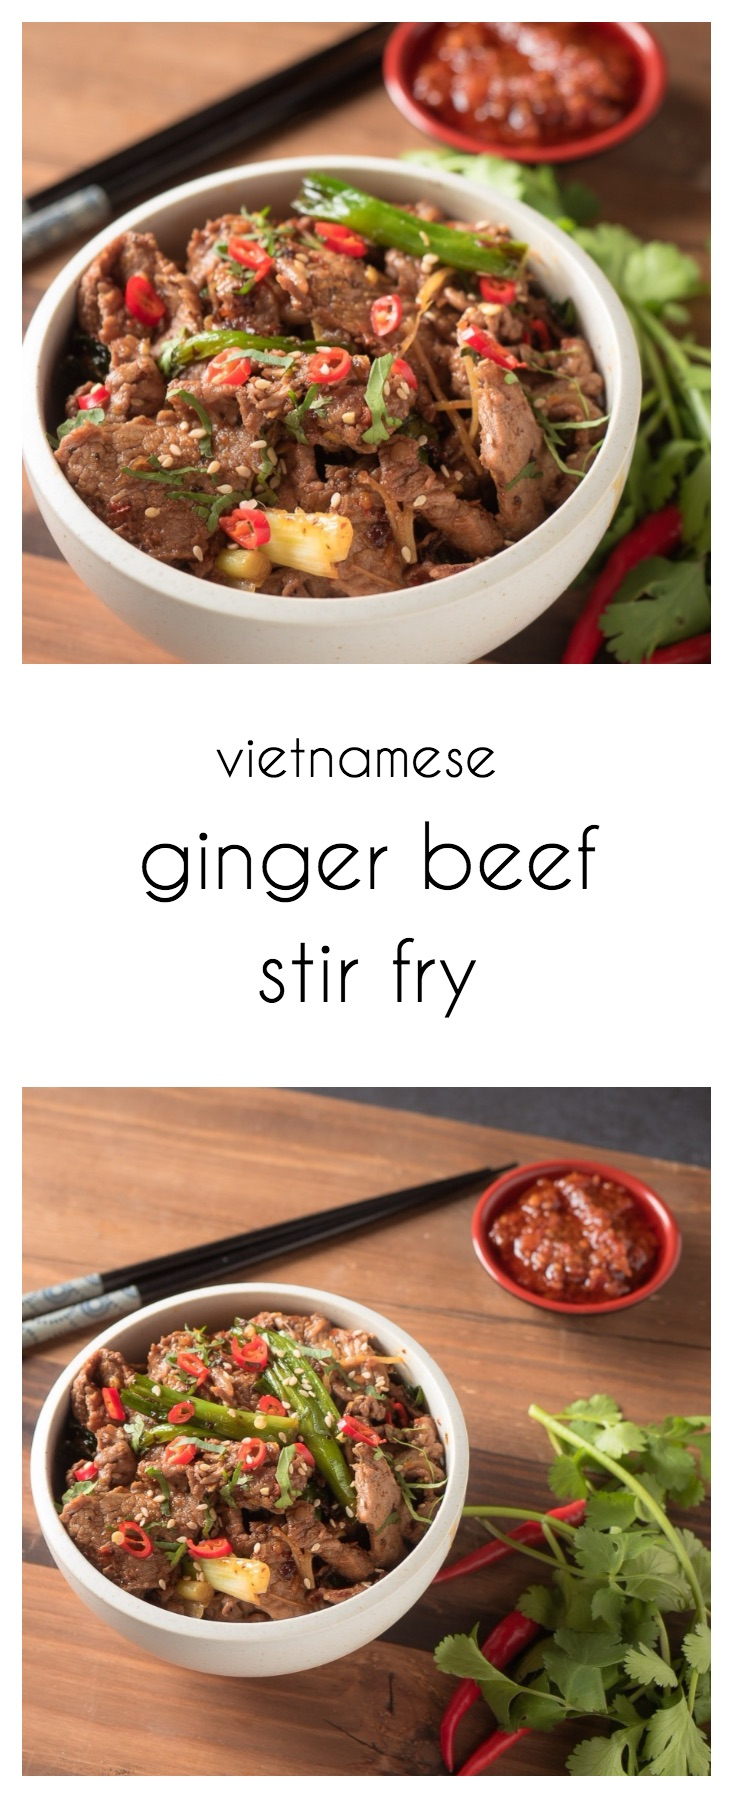 This ginger beef stir fry adds a spicy Vietnamese twist.